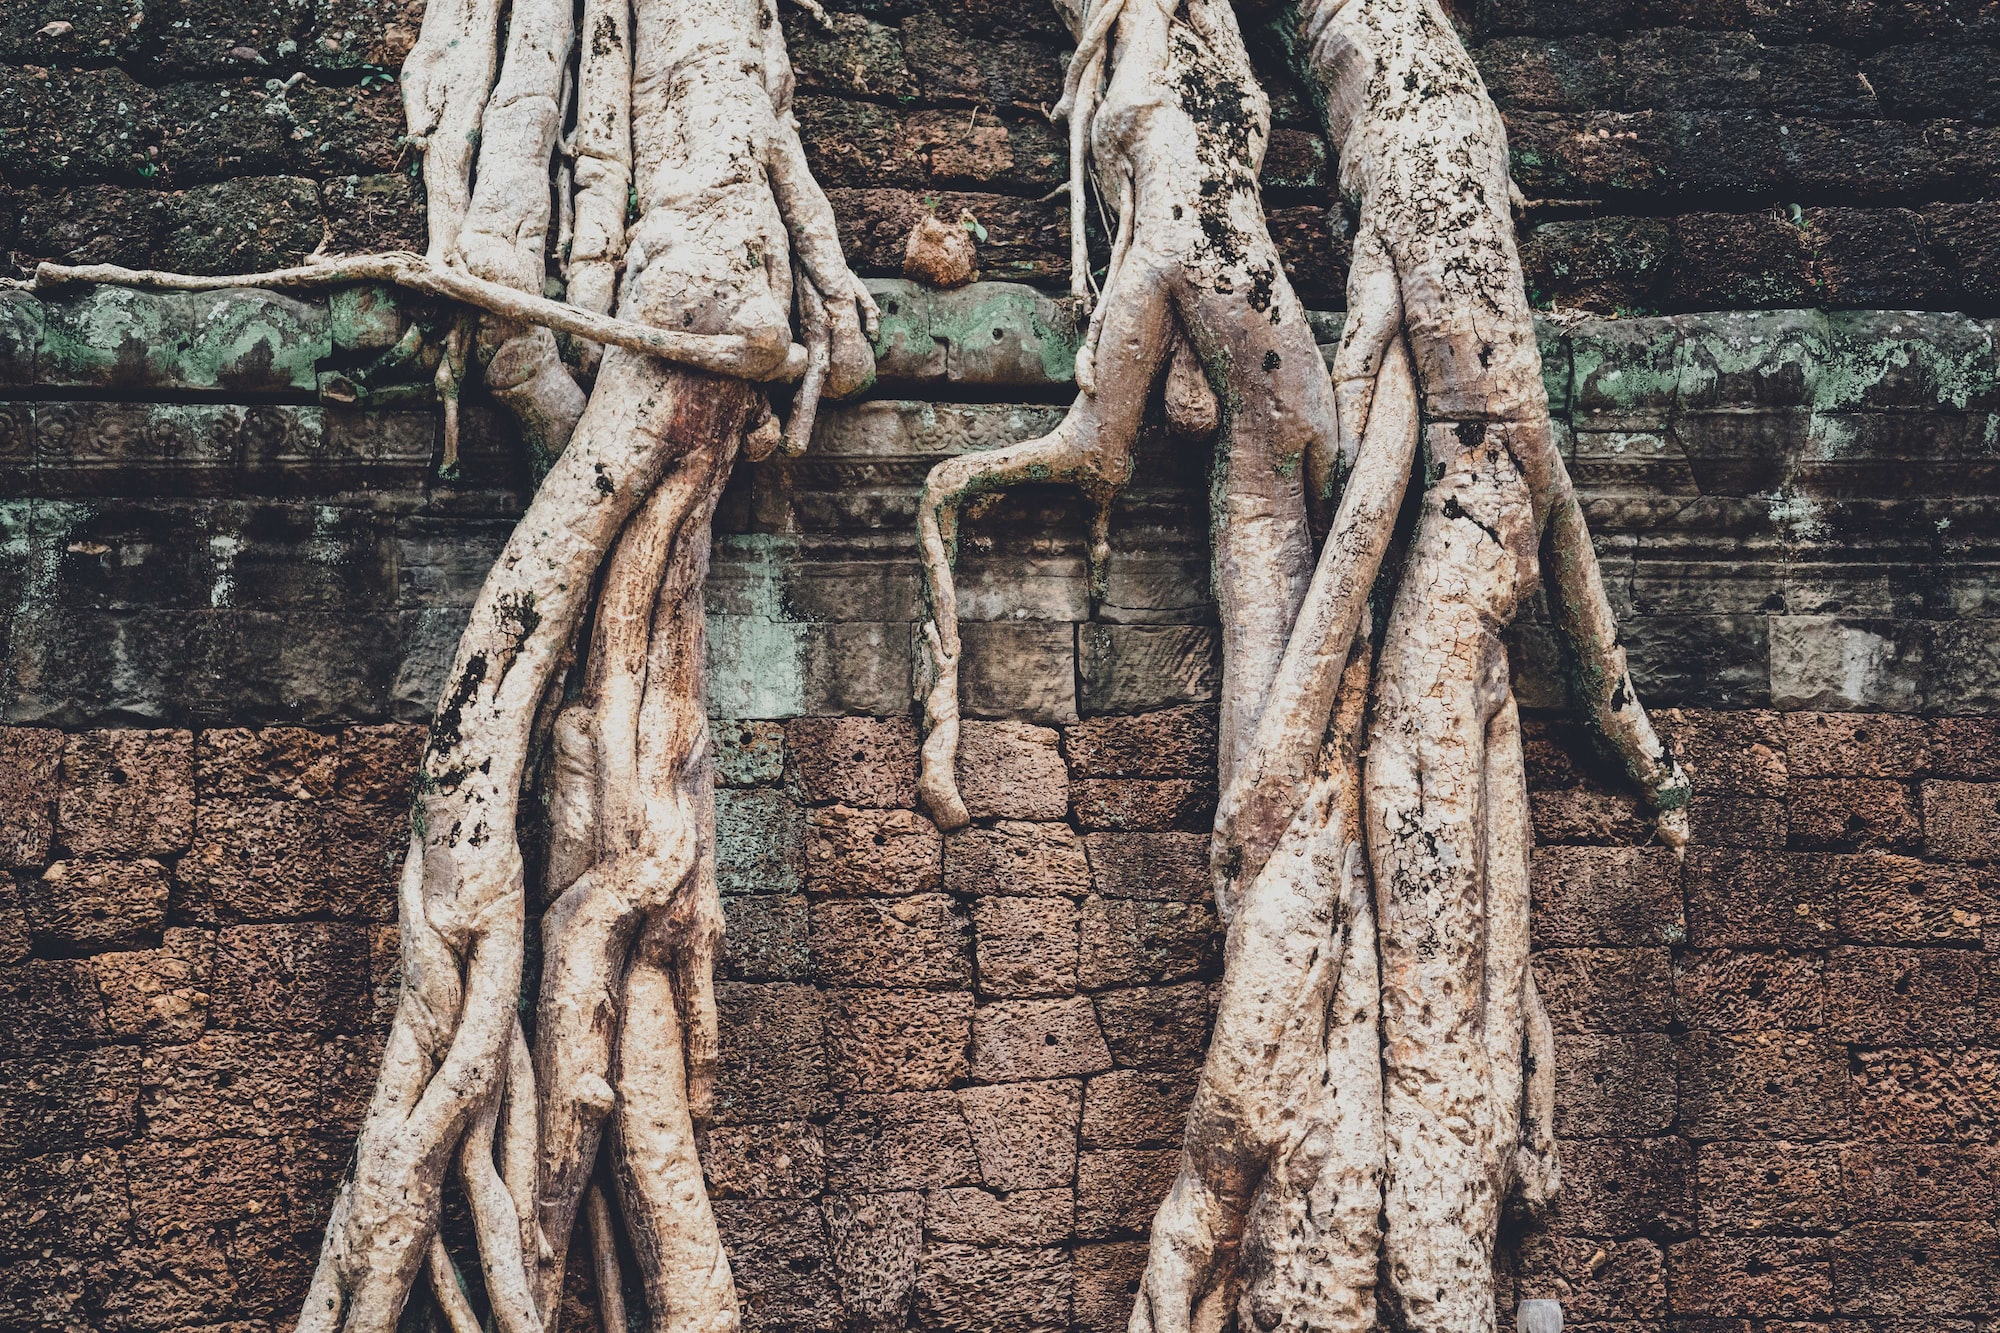 Loved exploring the ancient temple of Angkor Wat in Cambodia and getting a sense of the history that these trees have seen over the years.  The temples were built in 1100, who knows what amazing things have happened within these walls?